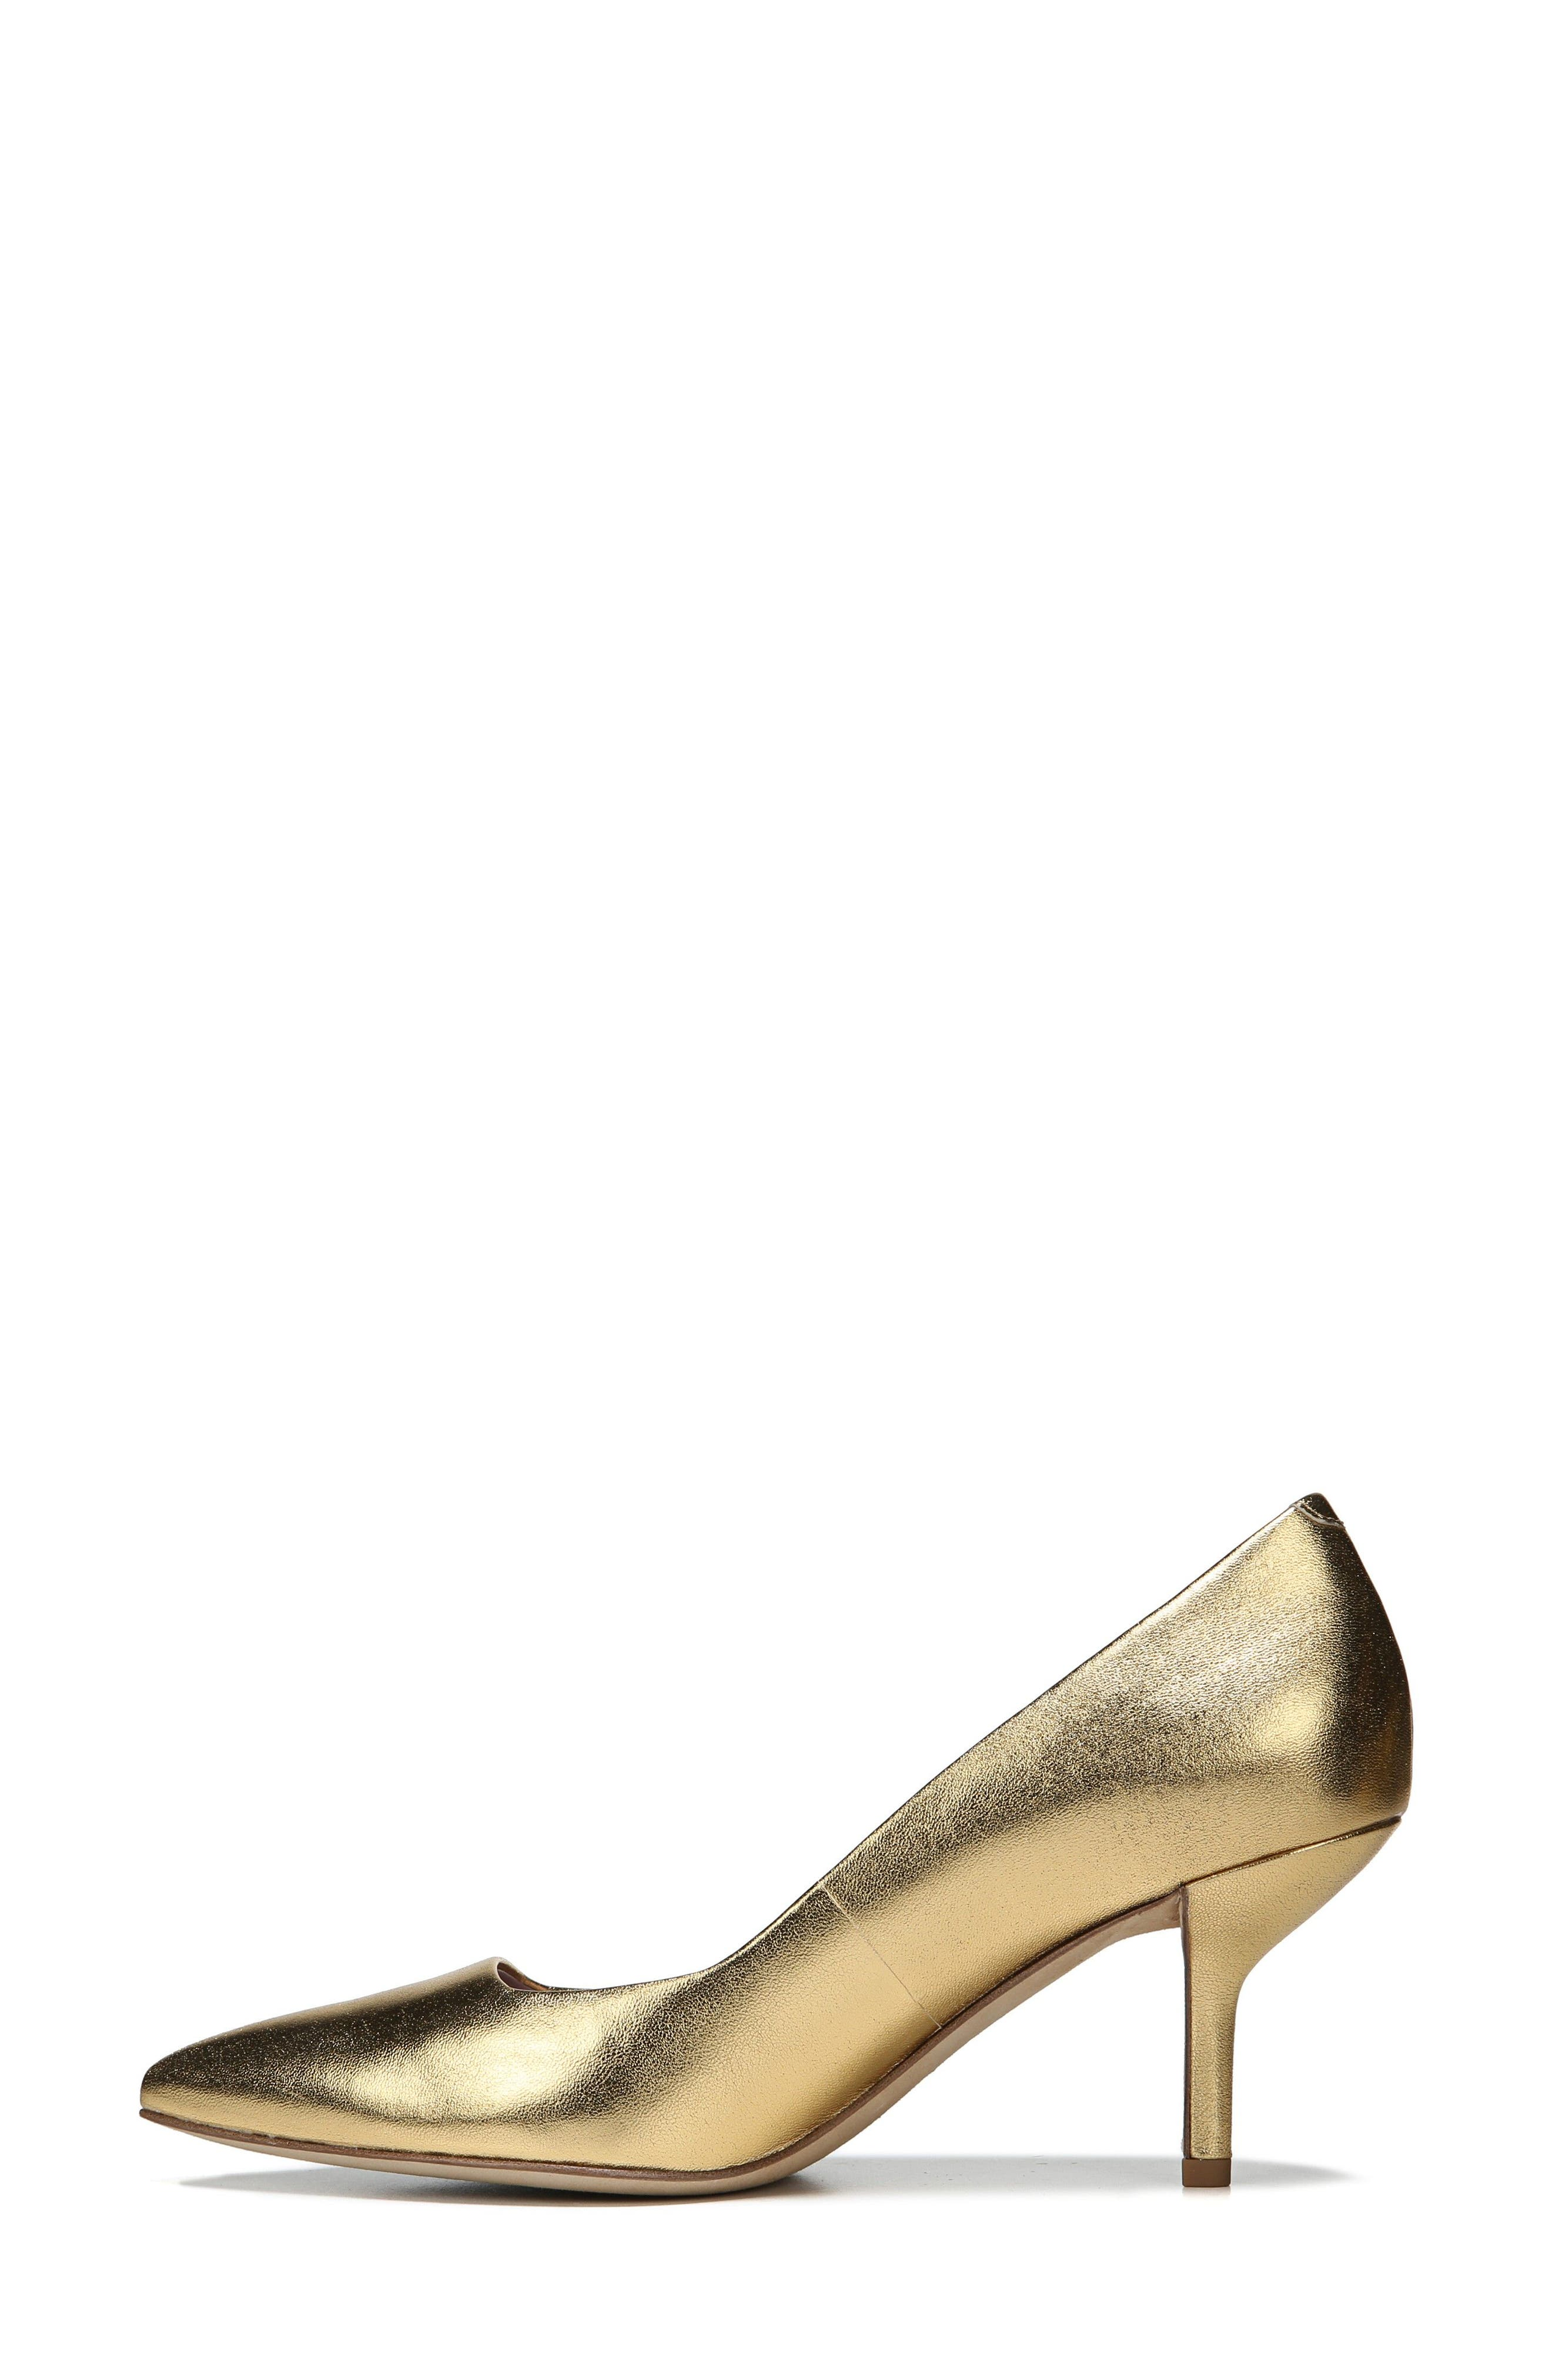 Meina Pointy Toe Pump,                             Alternate thumbnail 10, color,